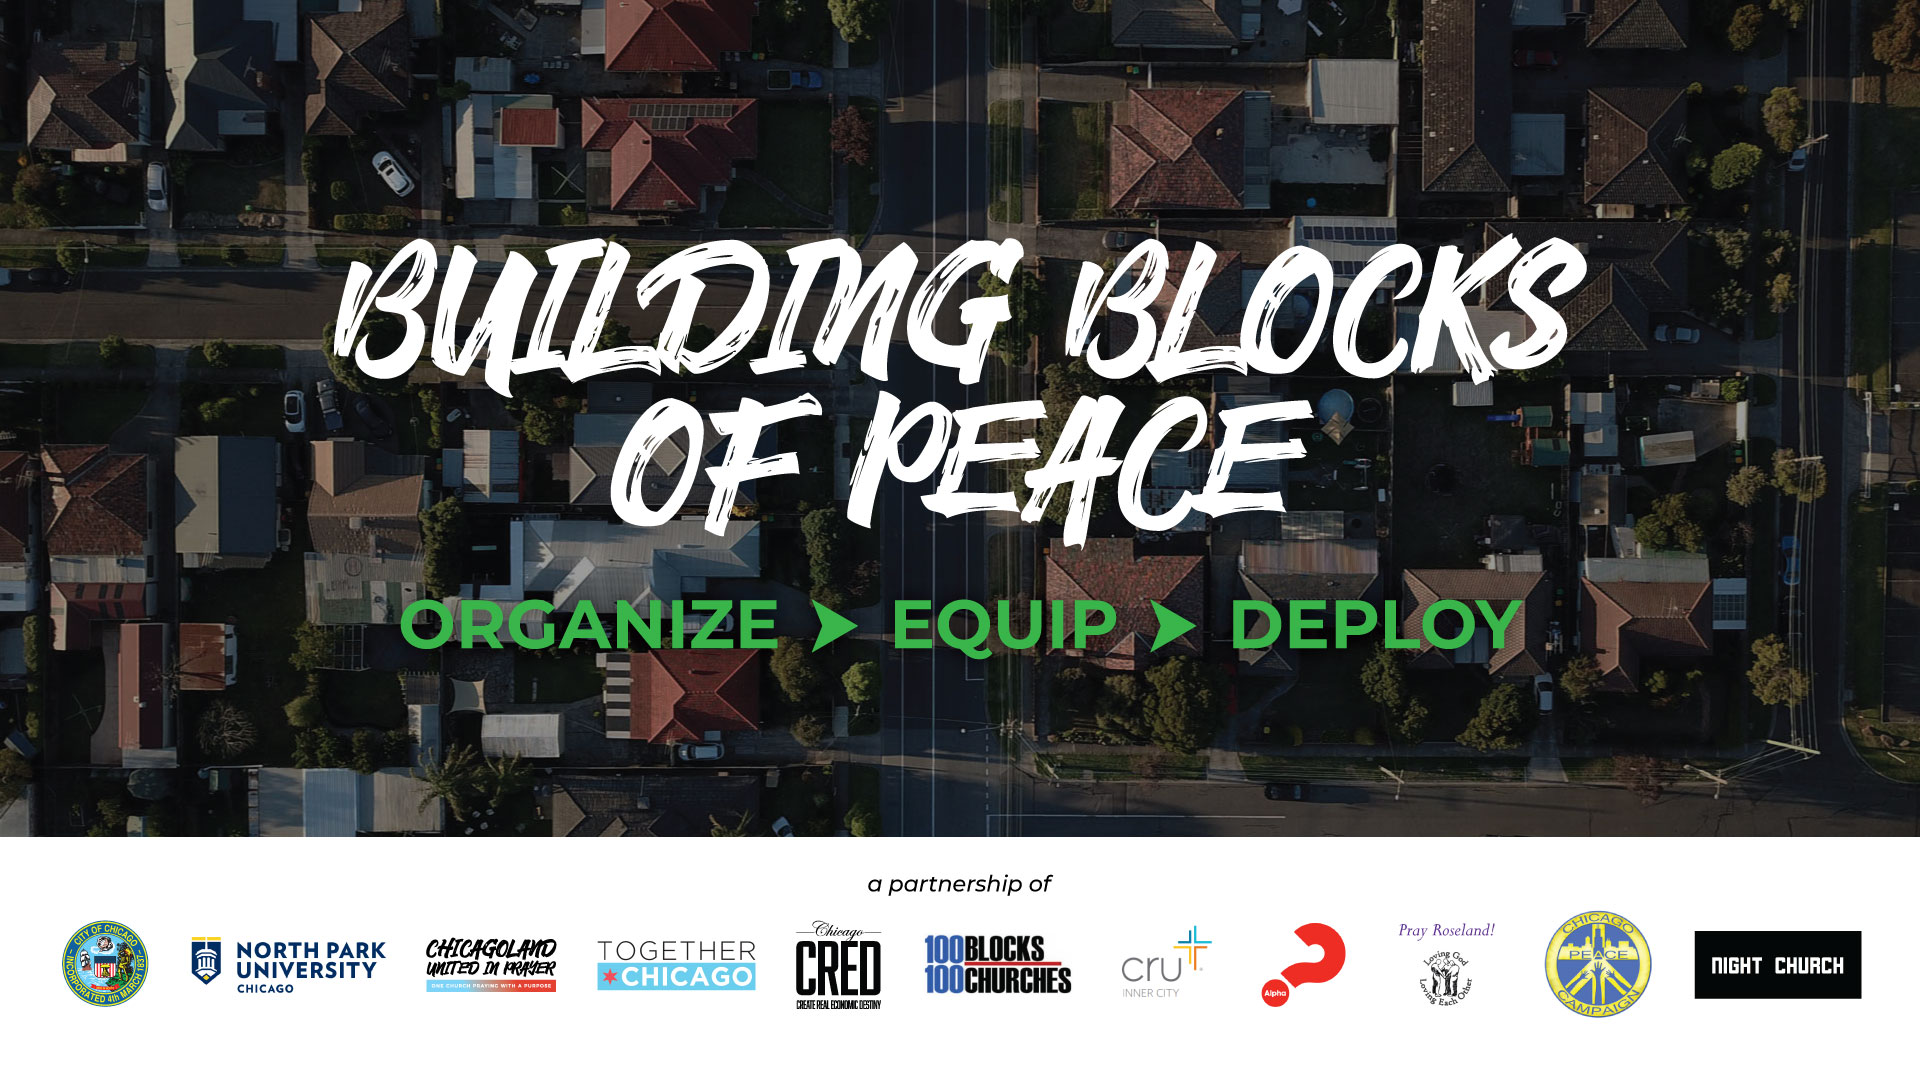 Building Blocks of Peace 2021 — Part 1, ORGANIZE [Register Here for the 3 Month Virtual Training Course]